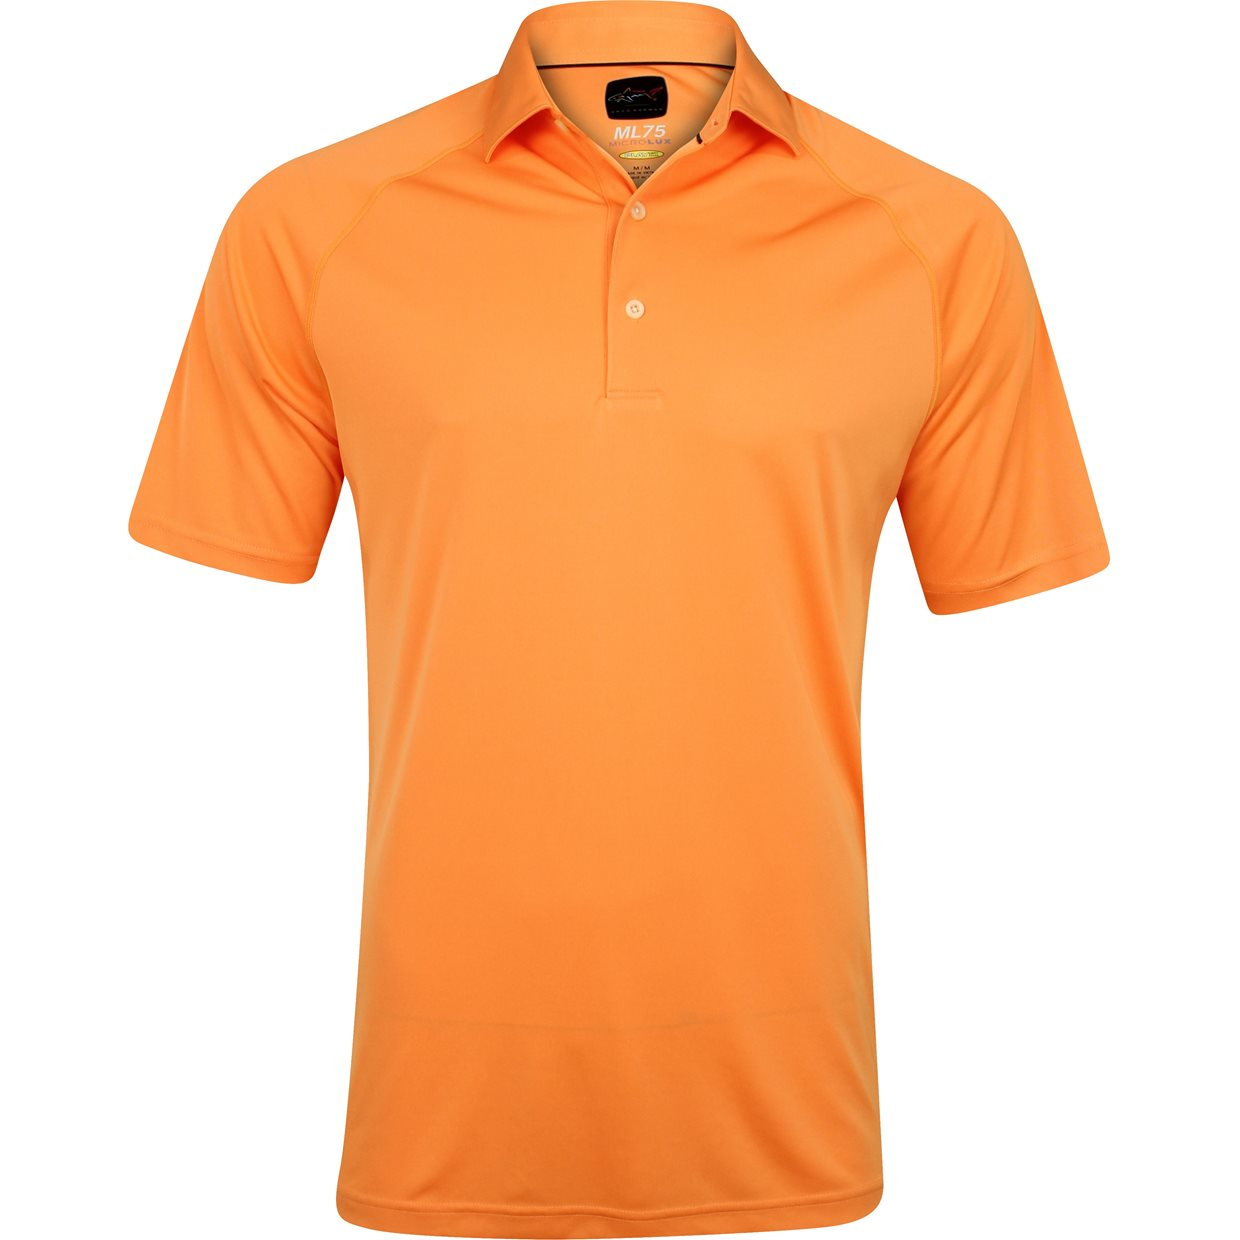 Greg norman ml75 micro lux solid shirt apparel at for Greg norman ml75 shirts